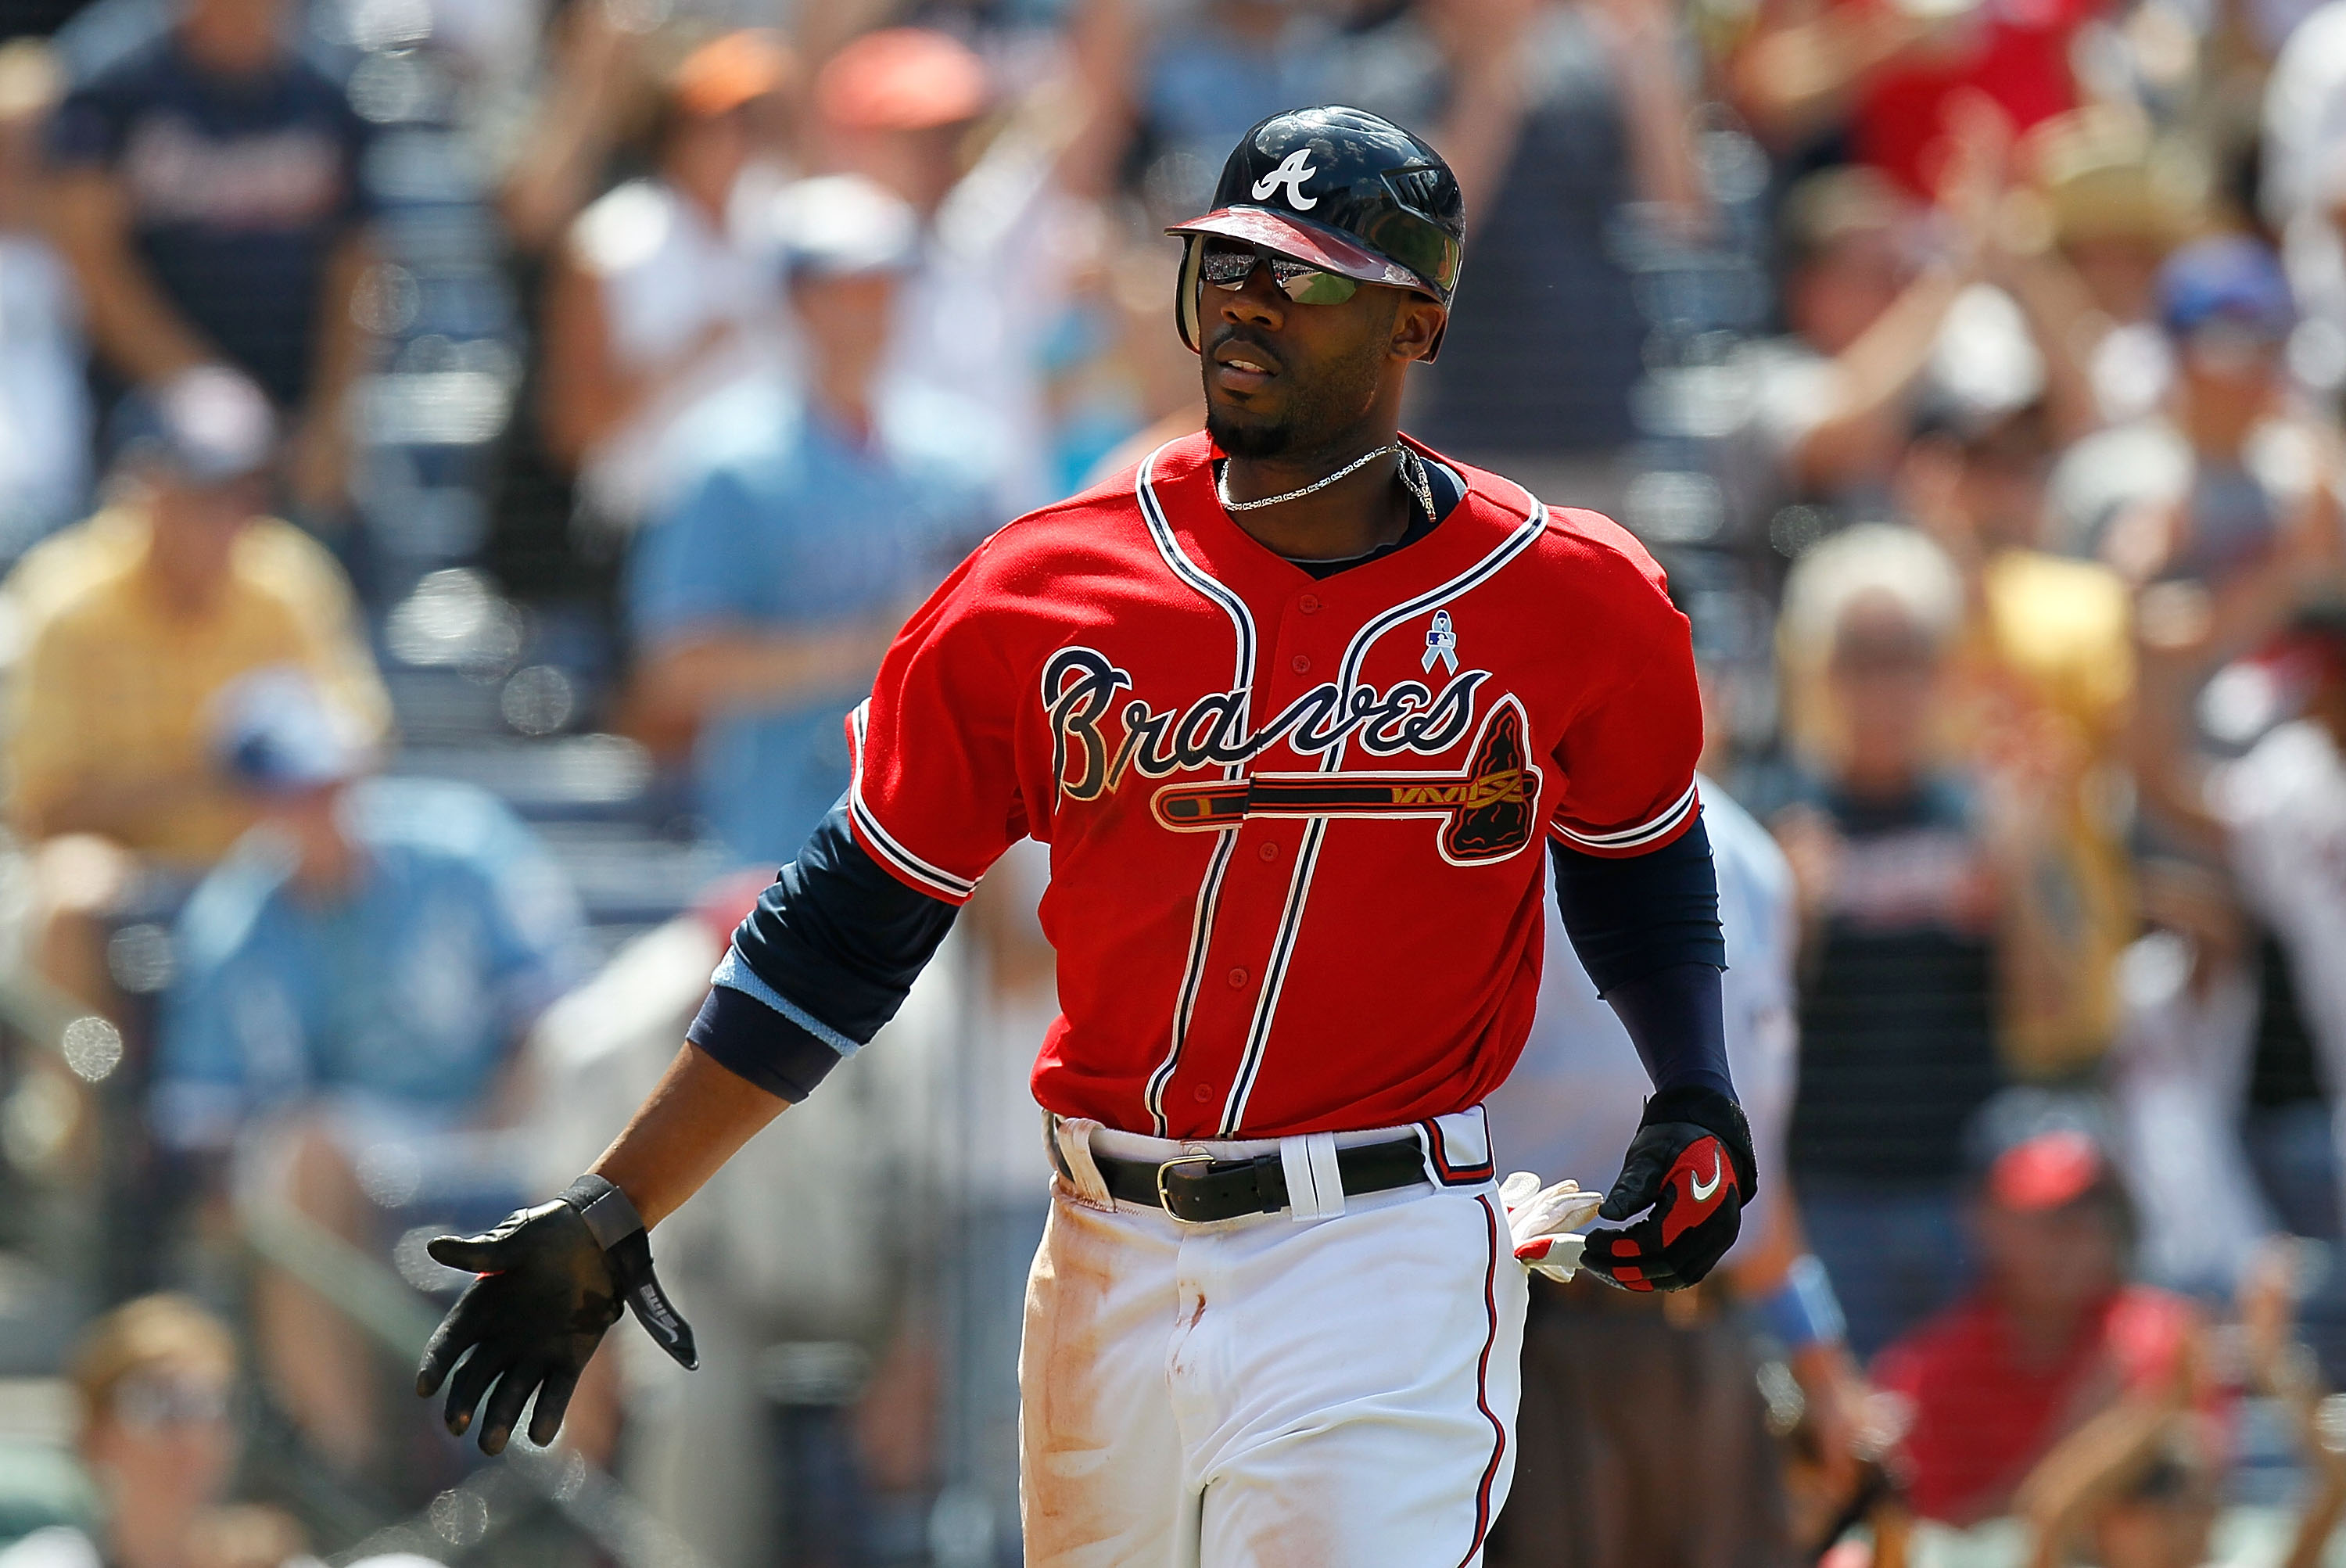 Jason Heyward was an early favorite for NL Rookie of the Year award.